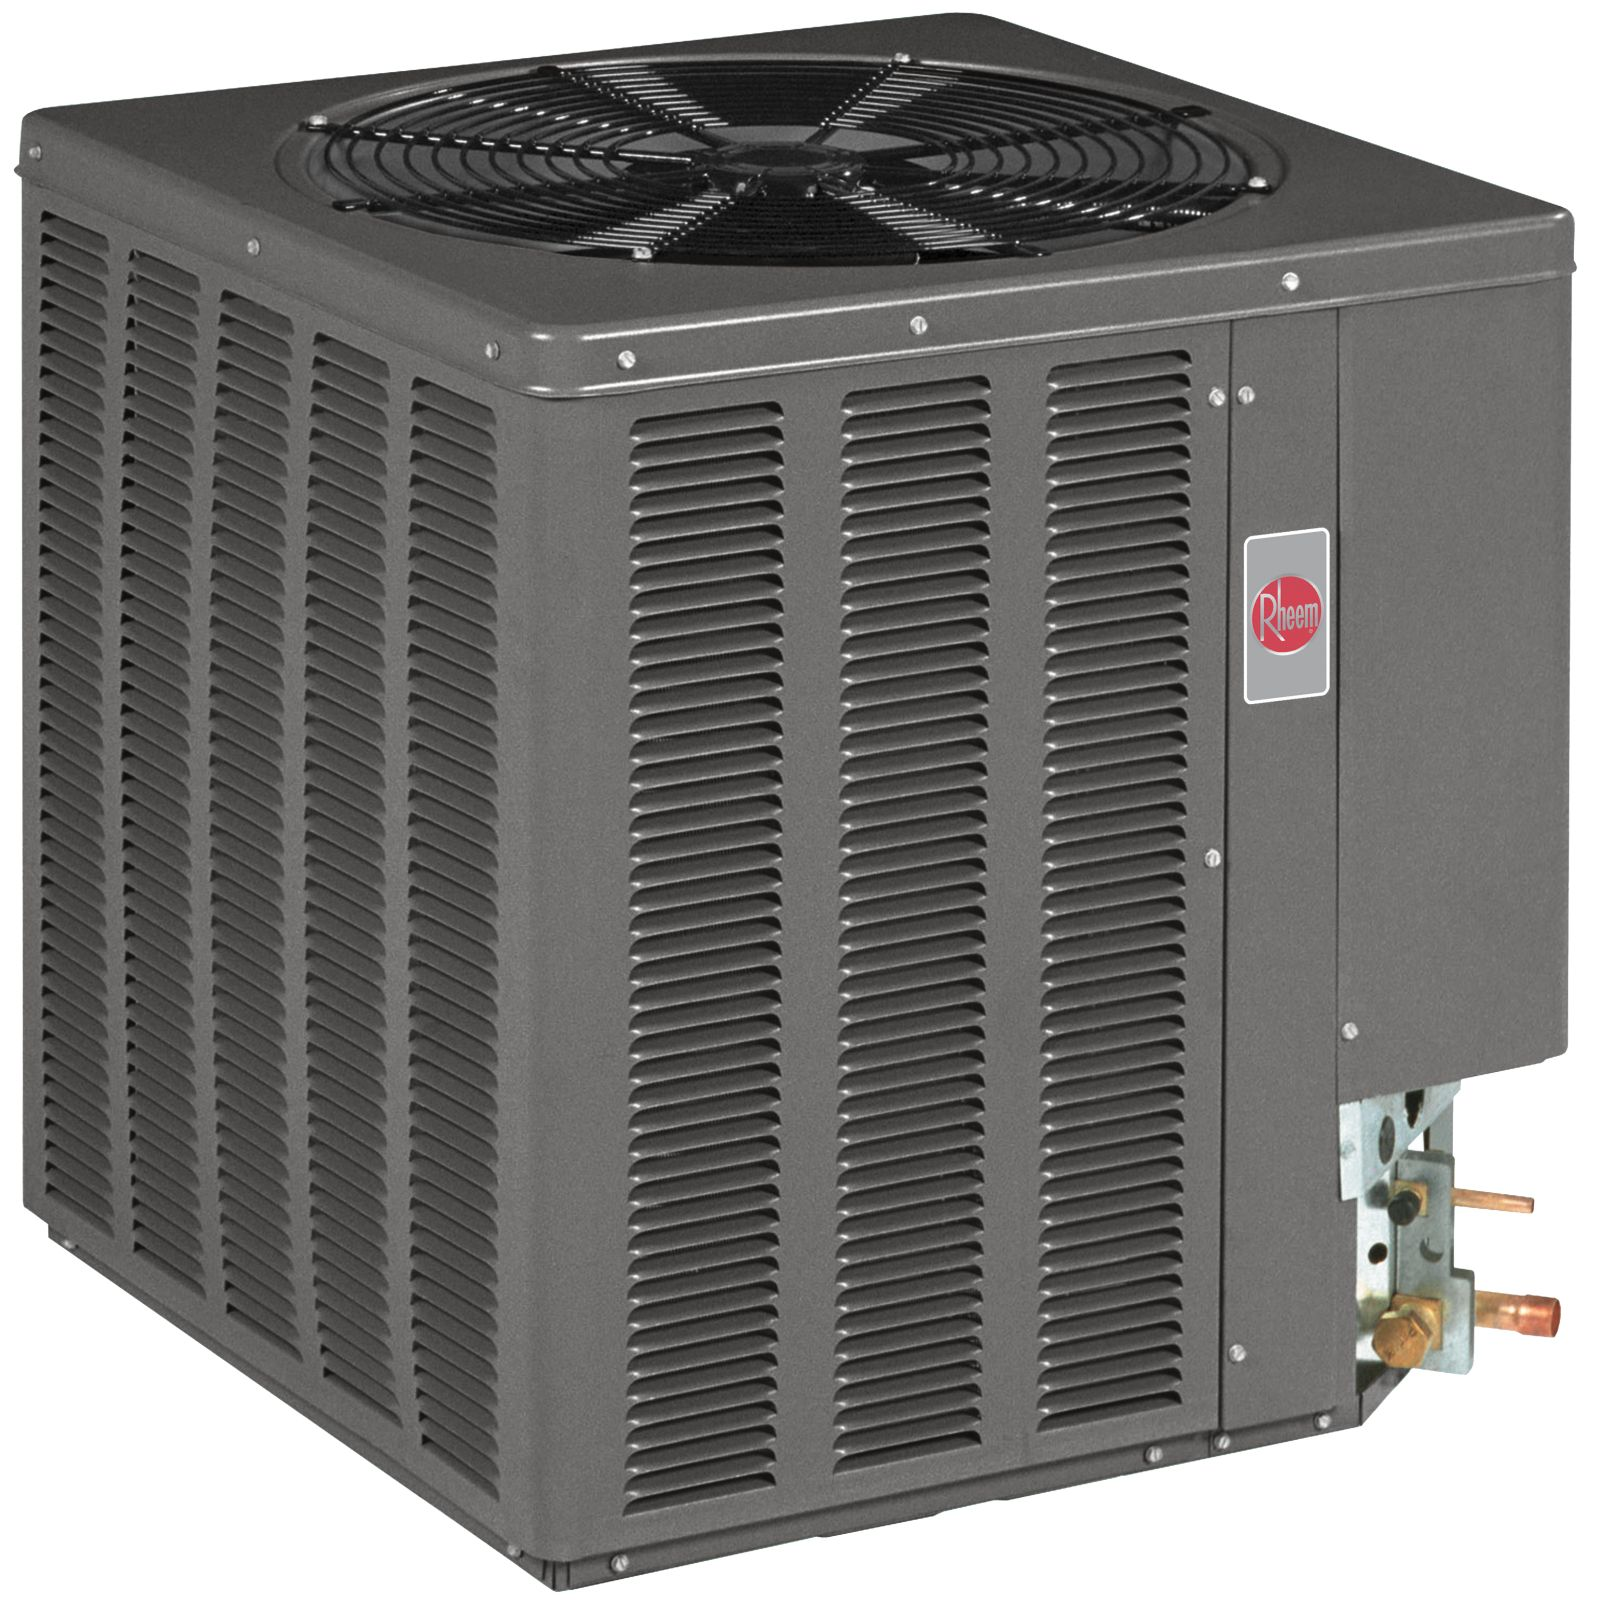 Rheem 13AJA60A01757 - Value Series 5 Ton, 13 SEER, R22 Air